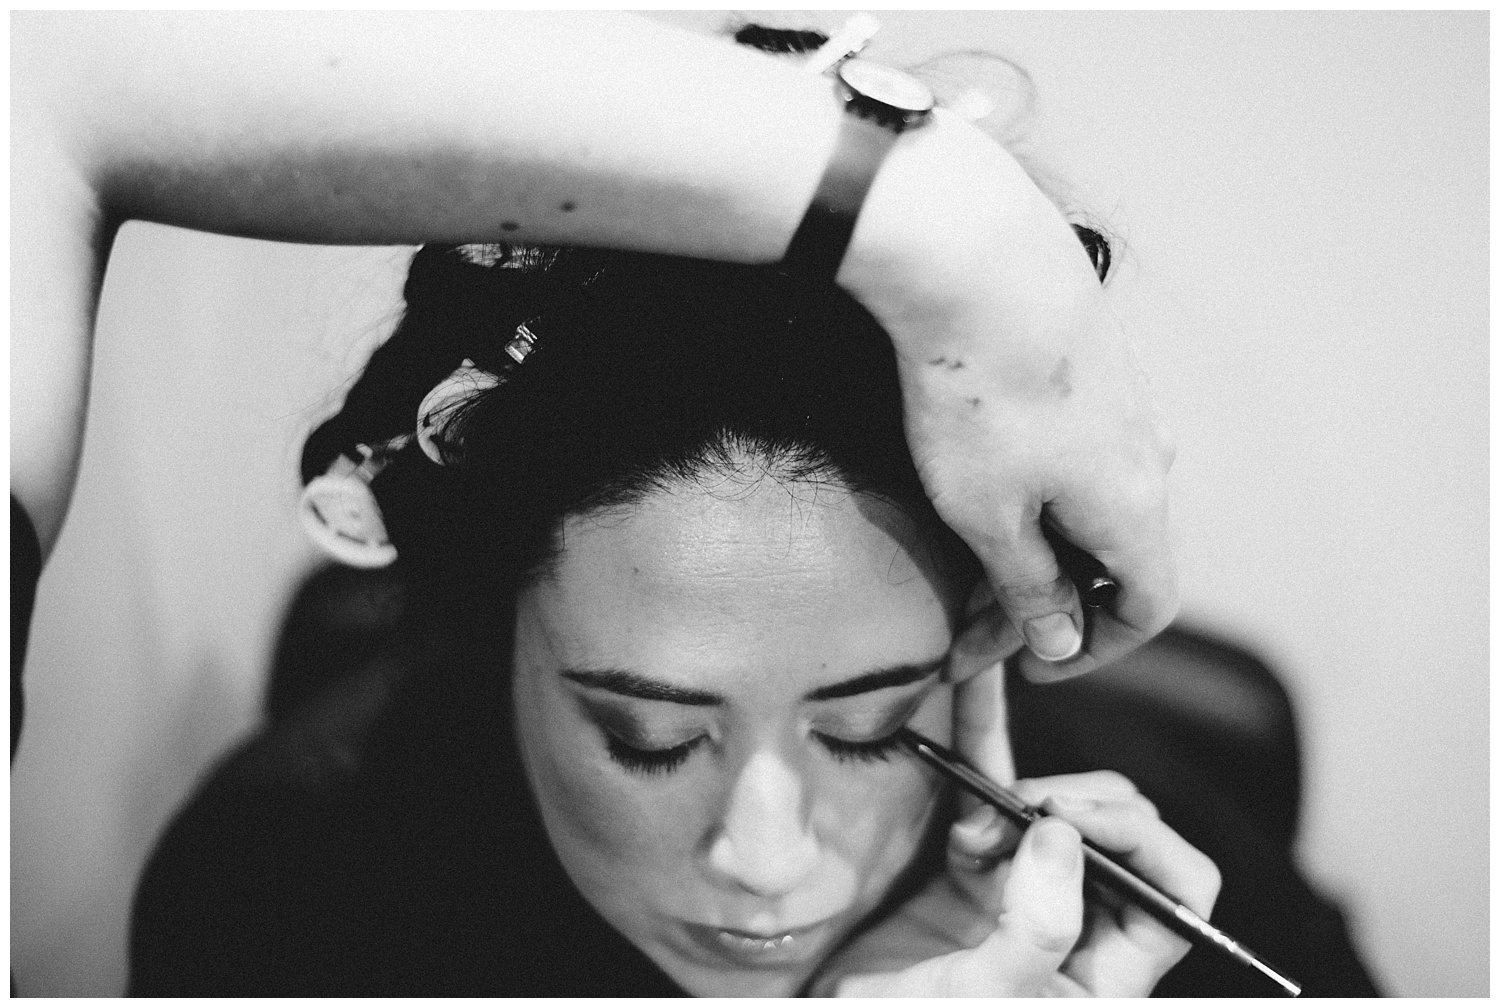 Bridal prep wedding photographer at Winchmores hair and beauty